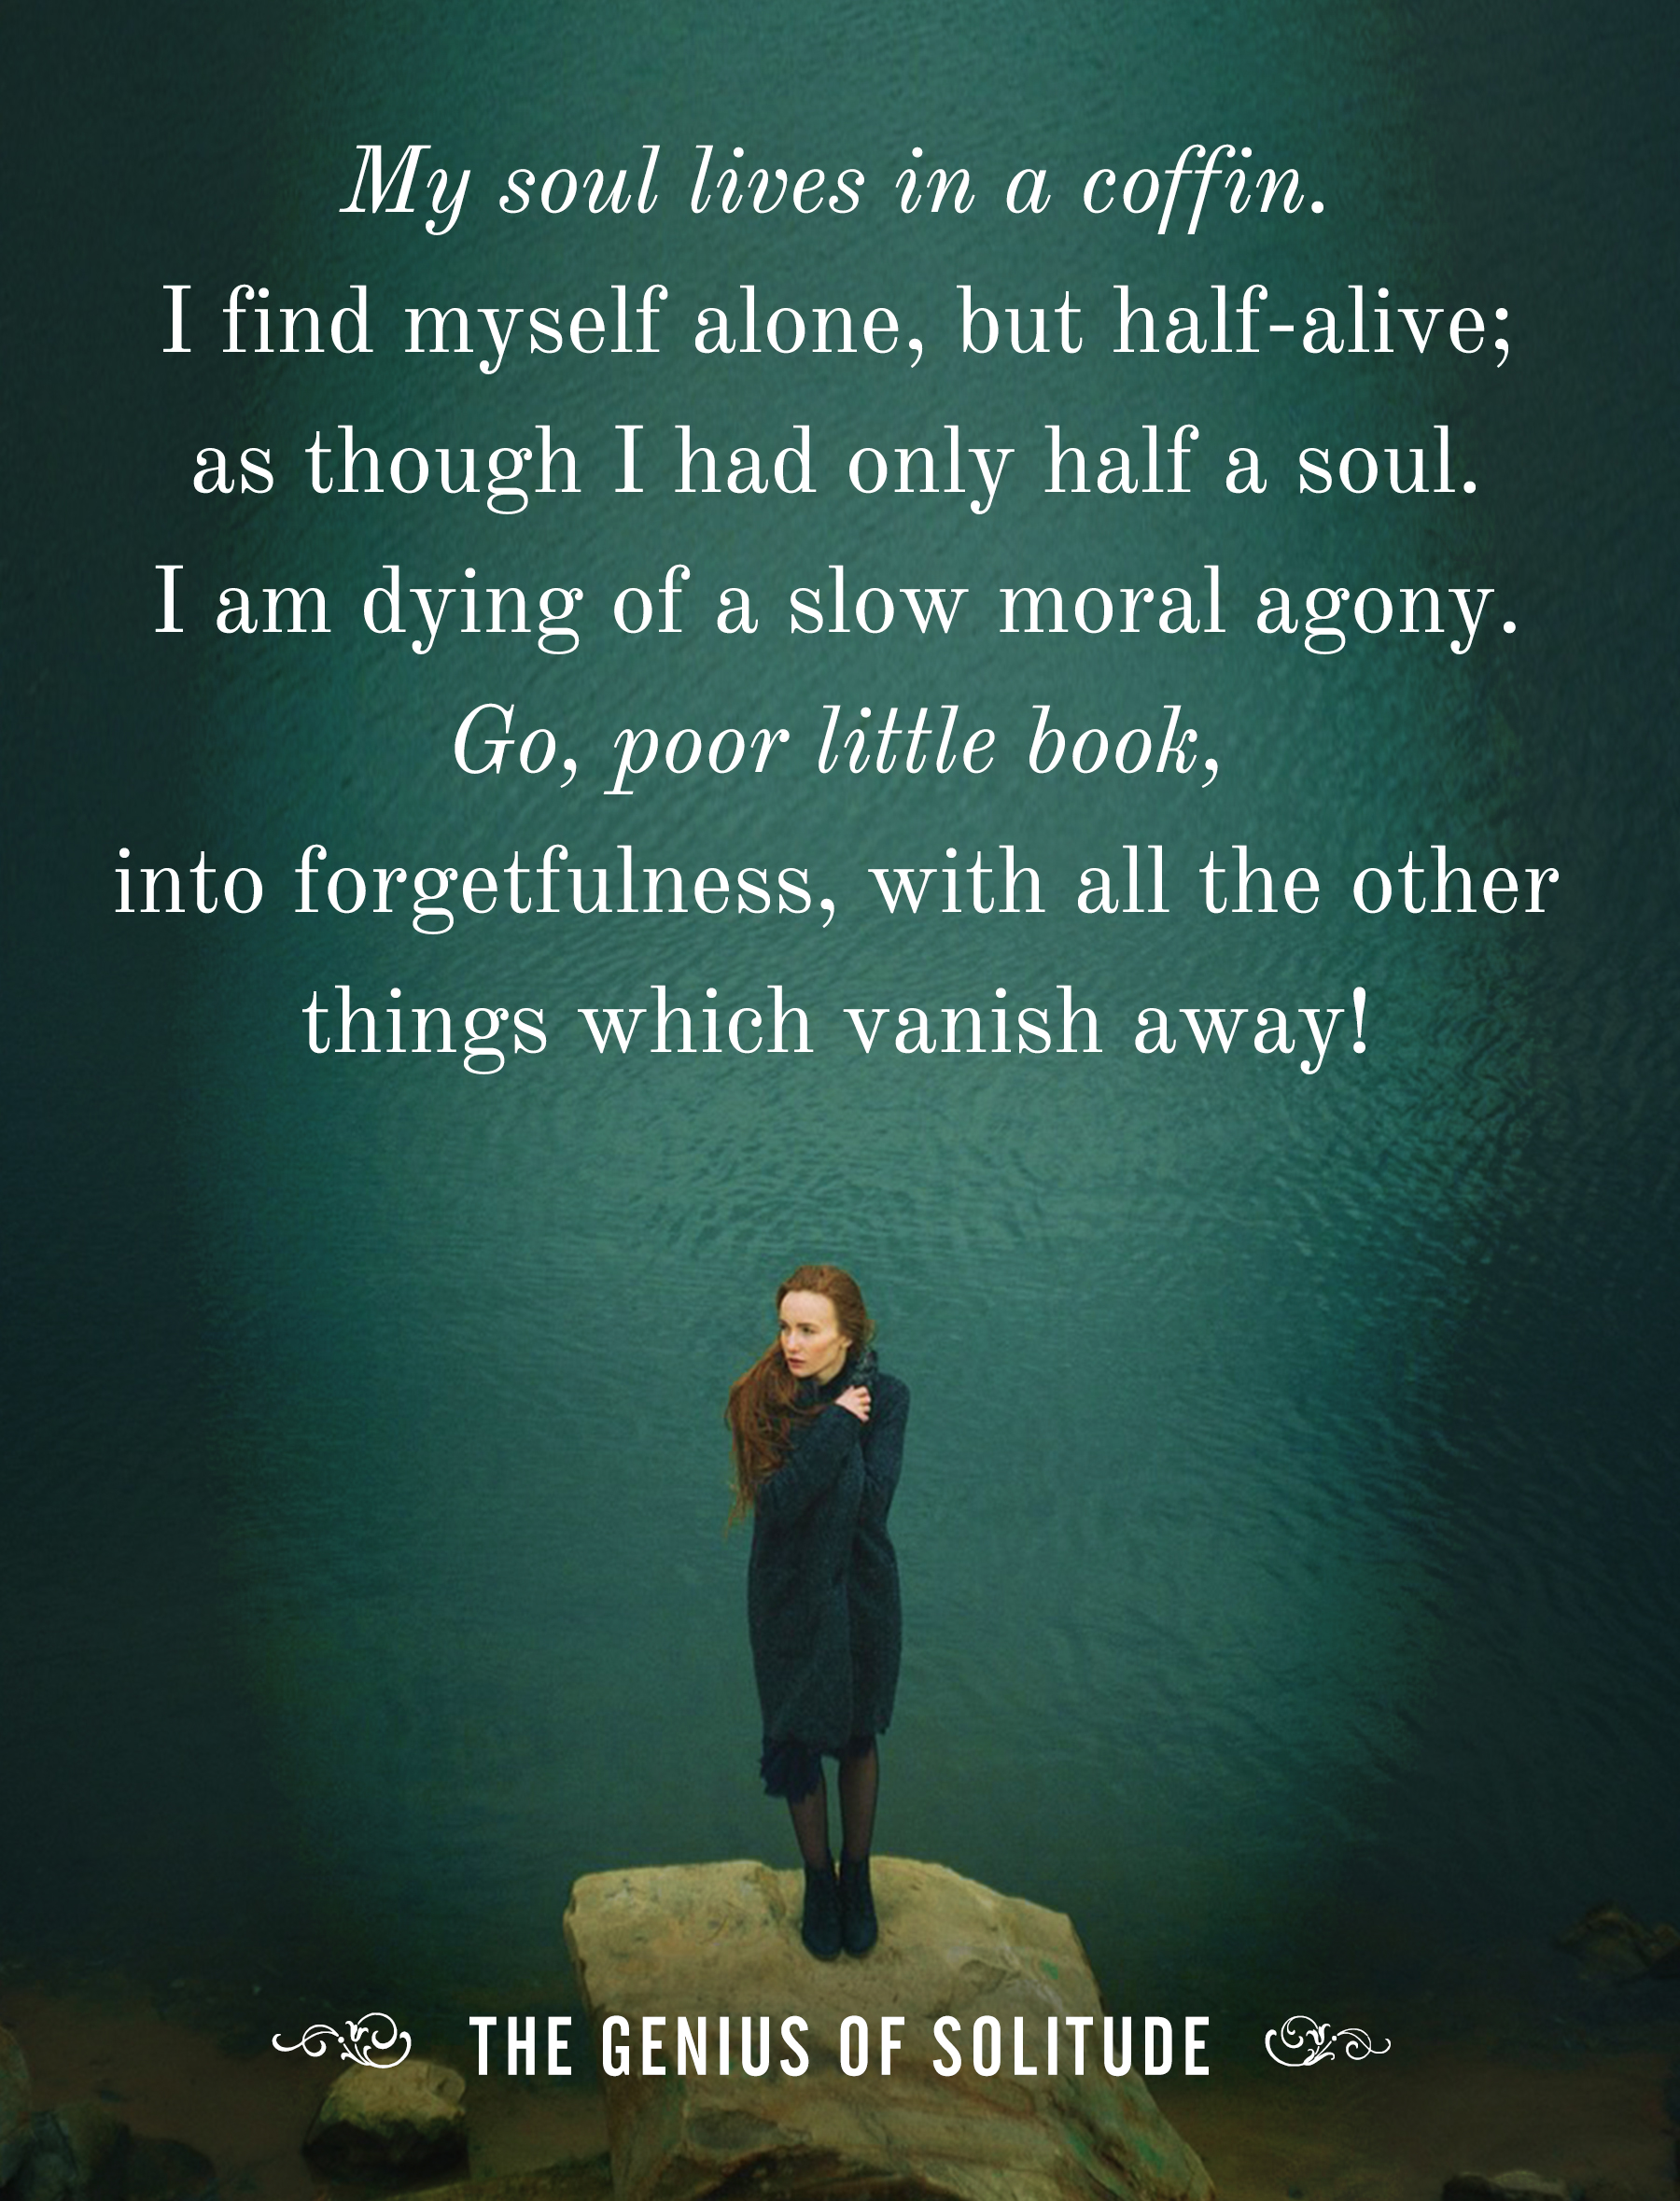 Quotes On Isolation : quotes, isolation, Alone,, Without, Being, Lonely, (inspirational, Quotes, Solitude, Isolation), Creativindie